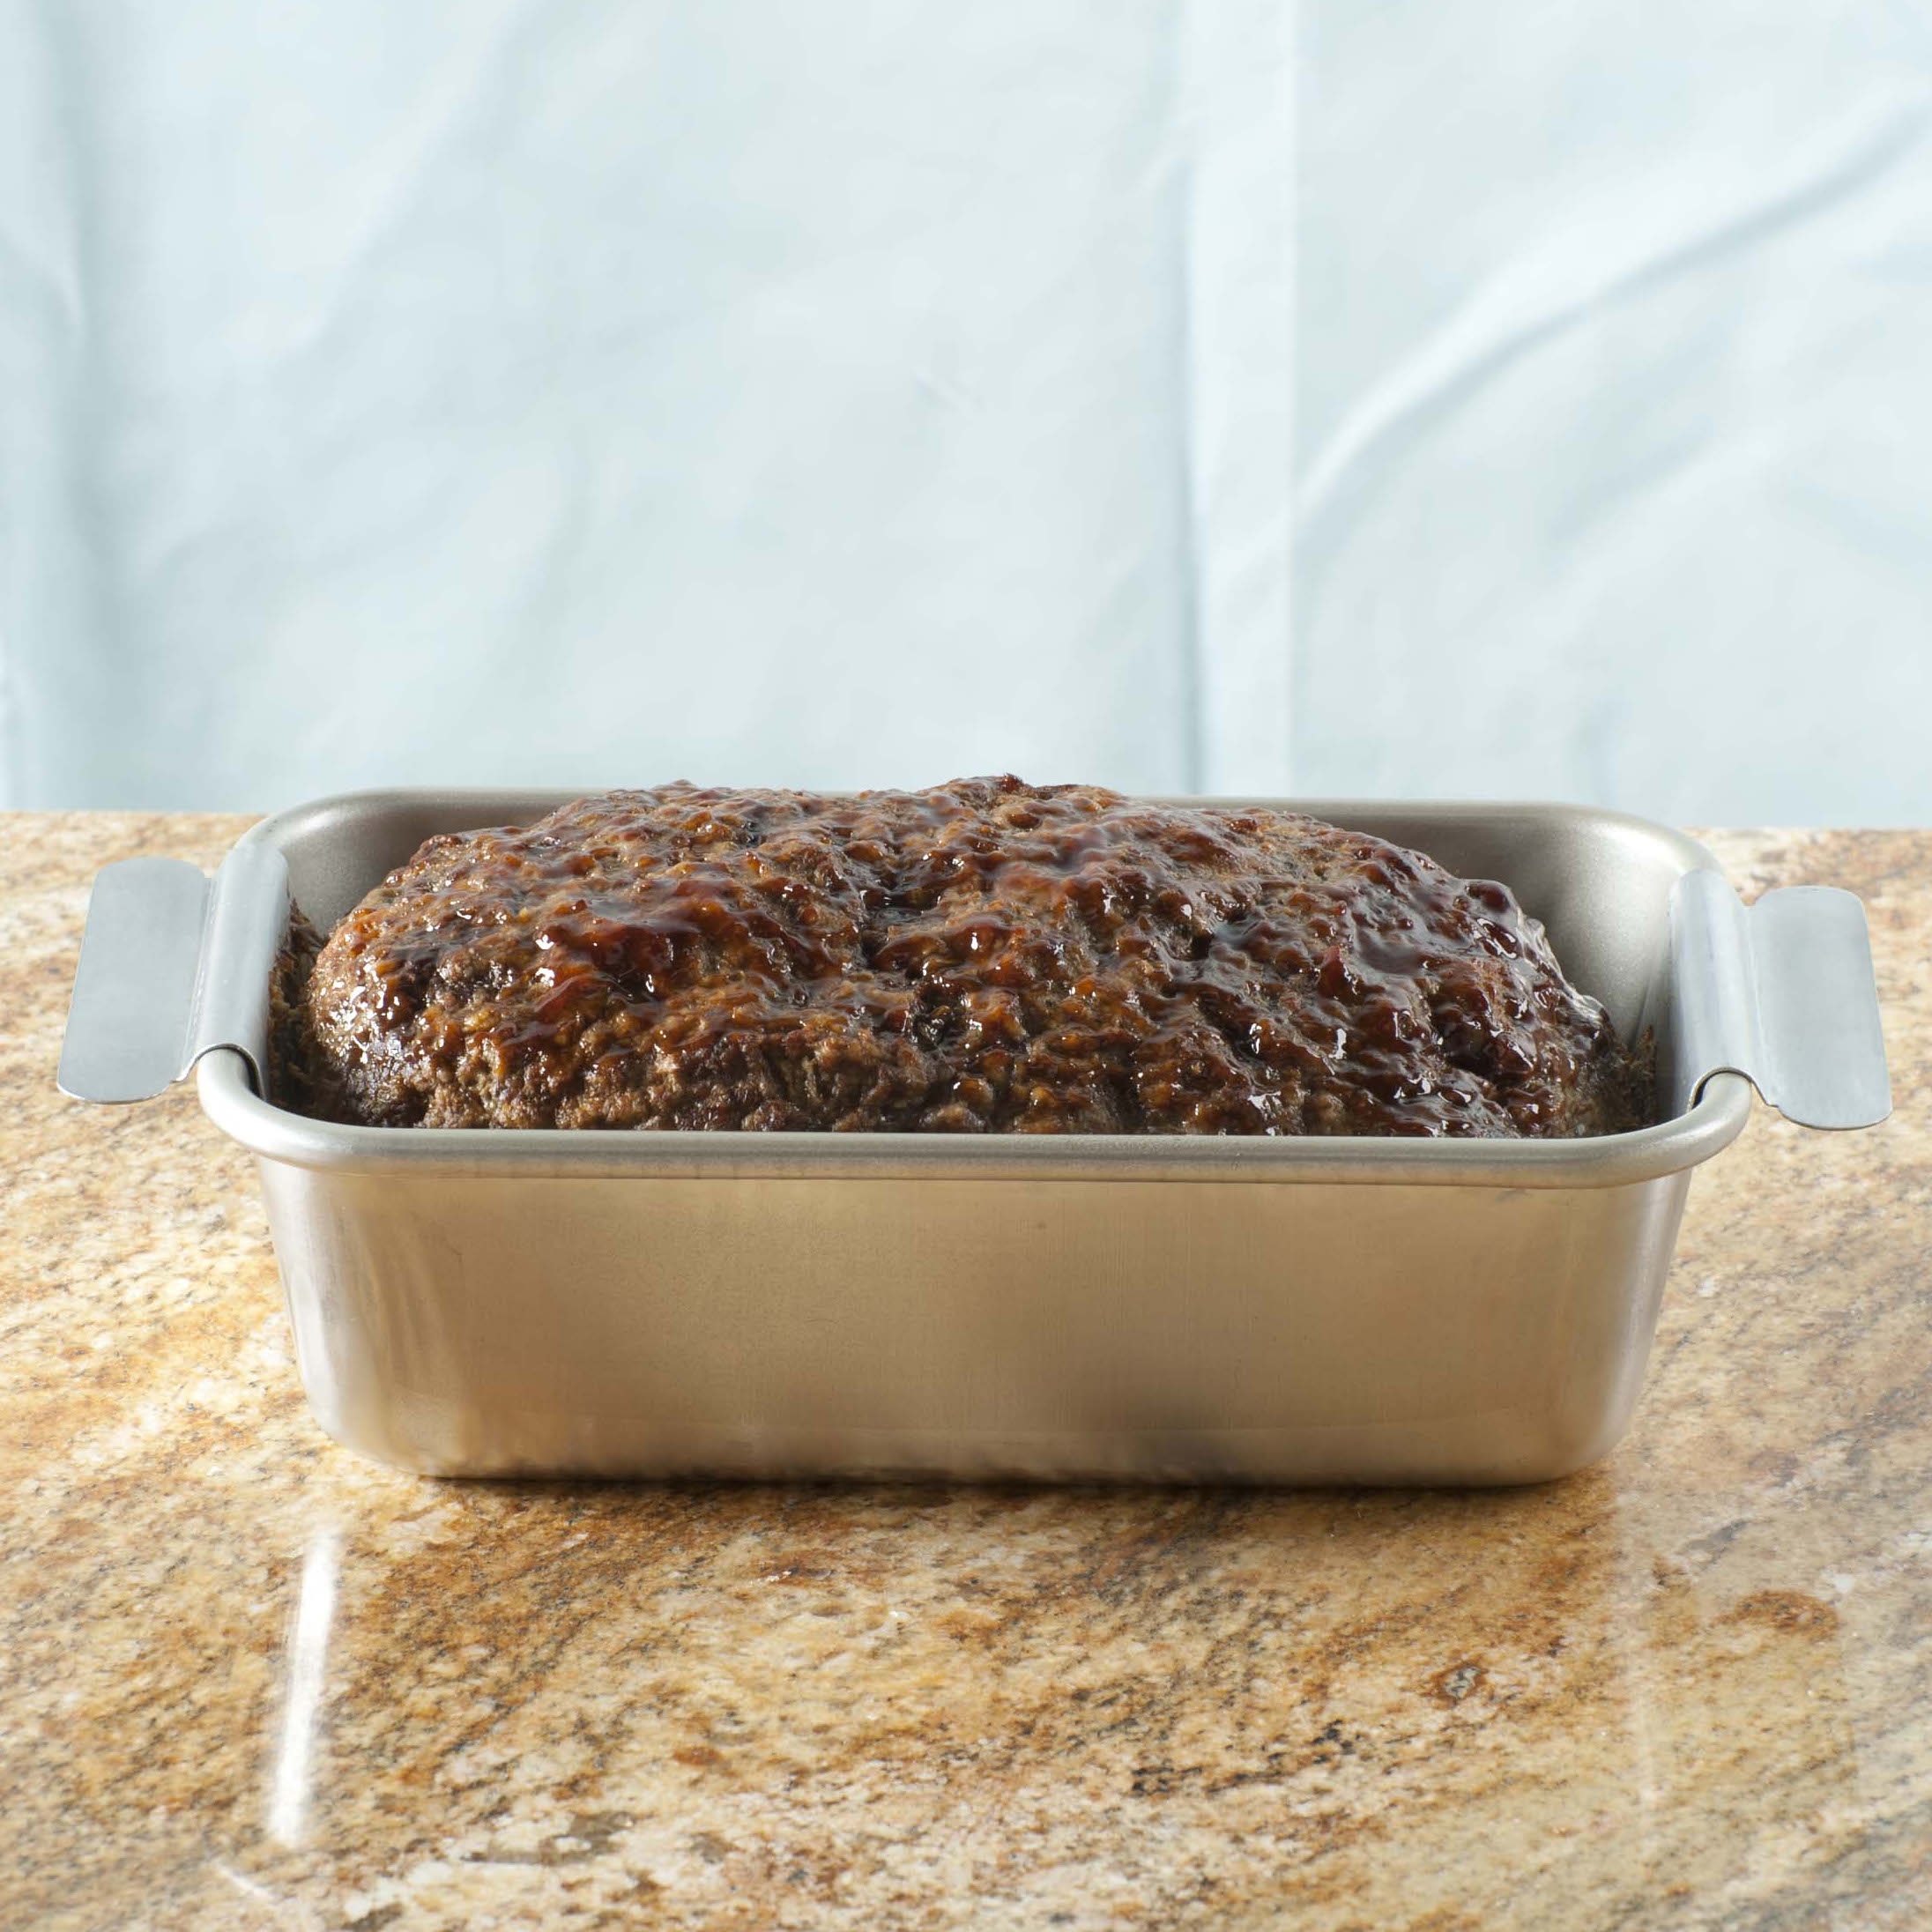 Nordic Ware Steel Meat Loaf Pan with Lifting Trivet, 10 x 3 Inch